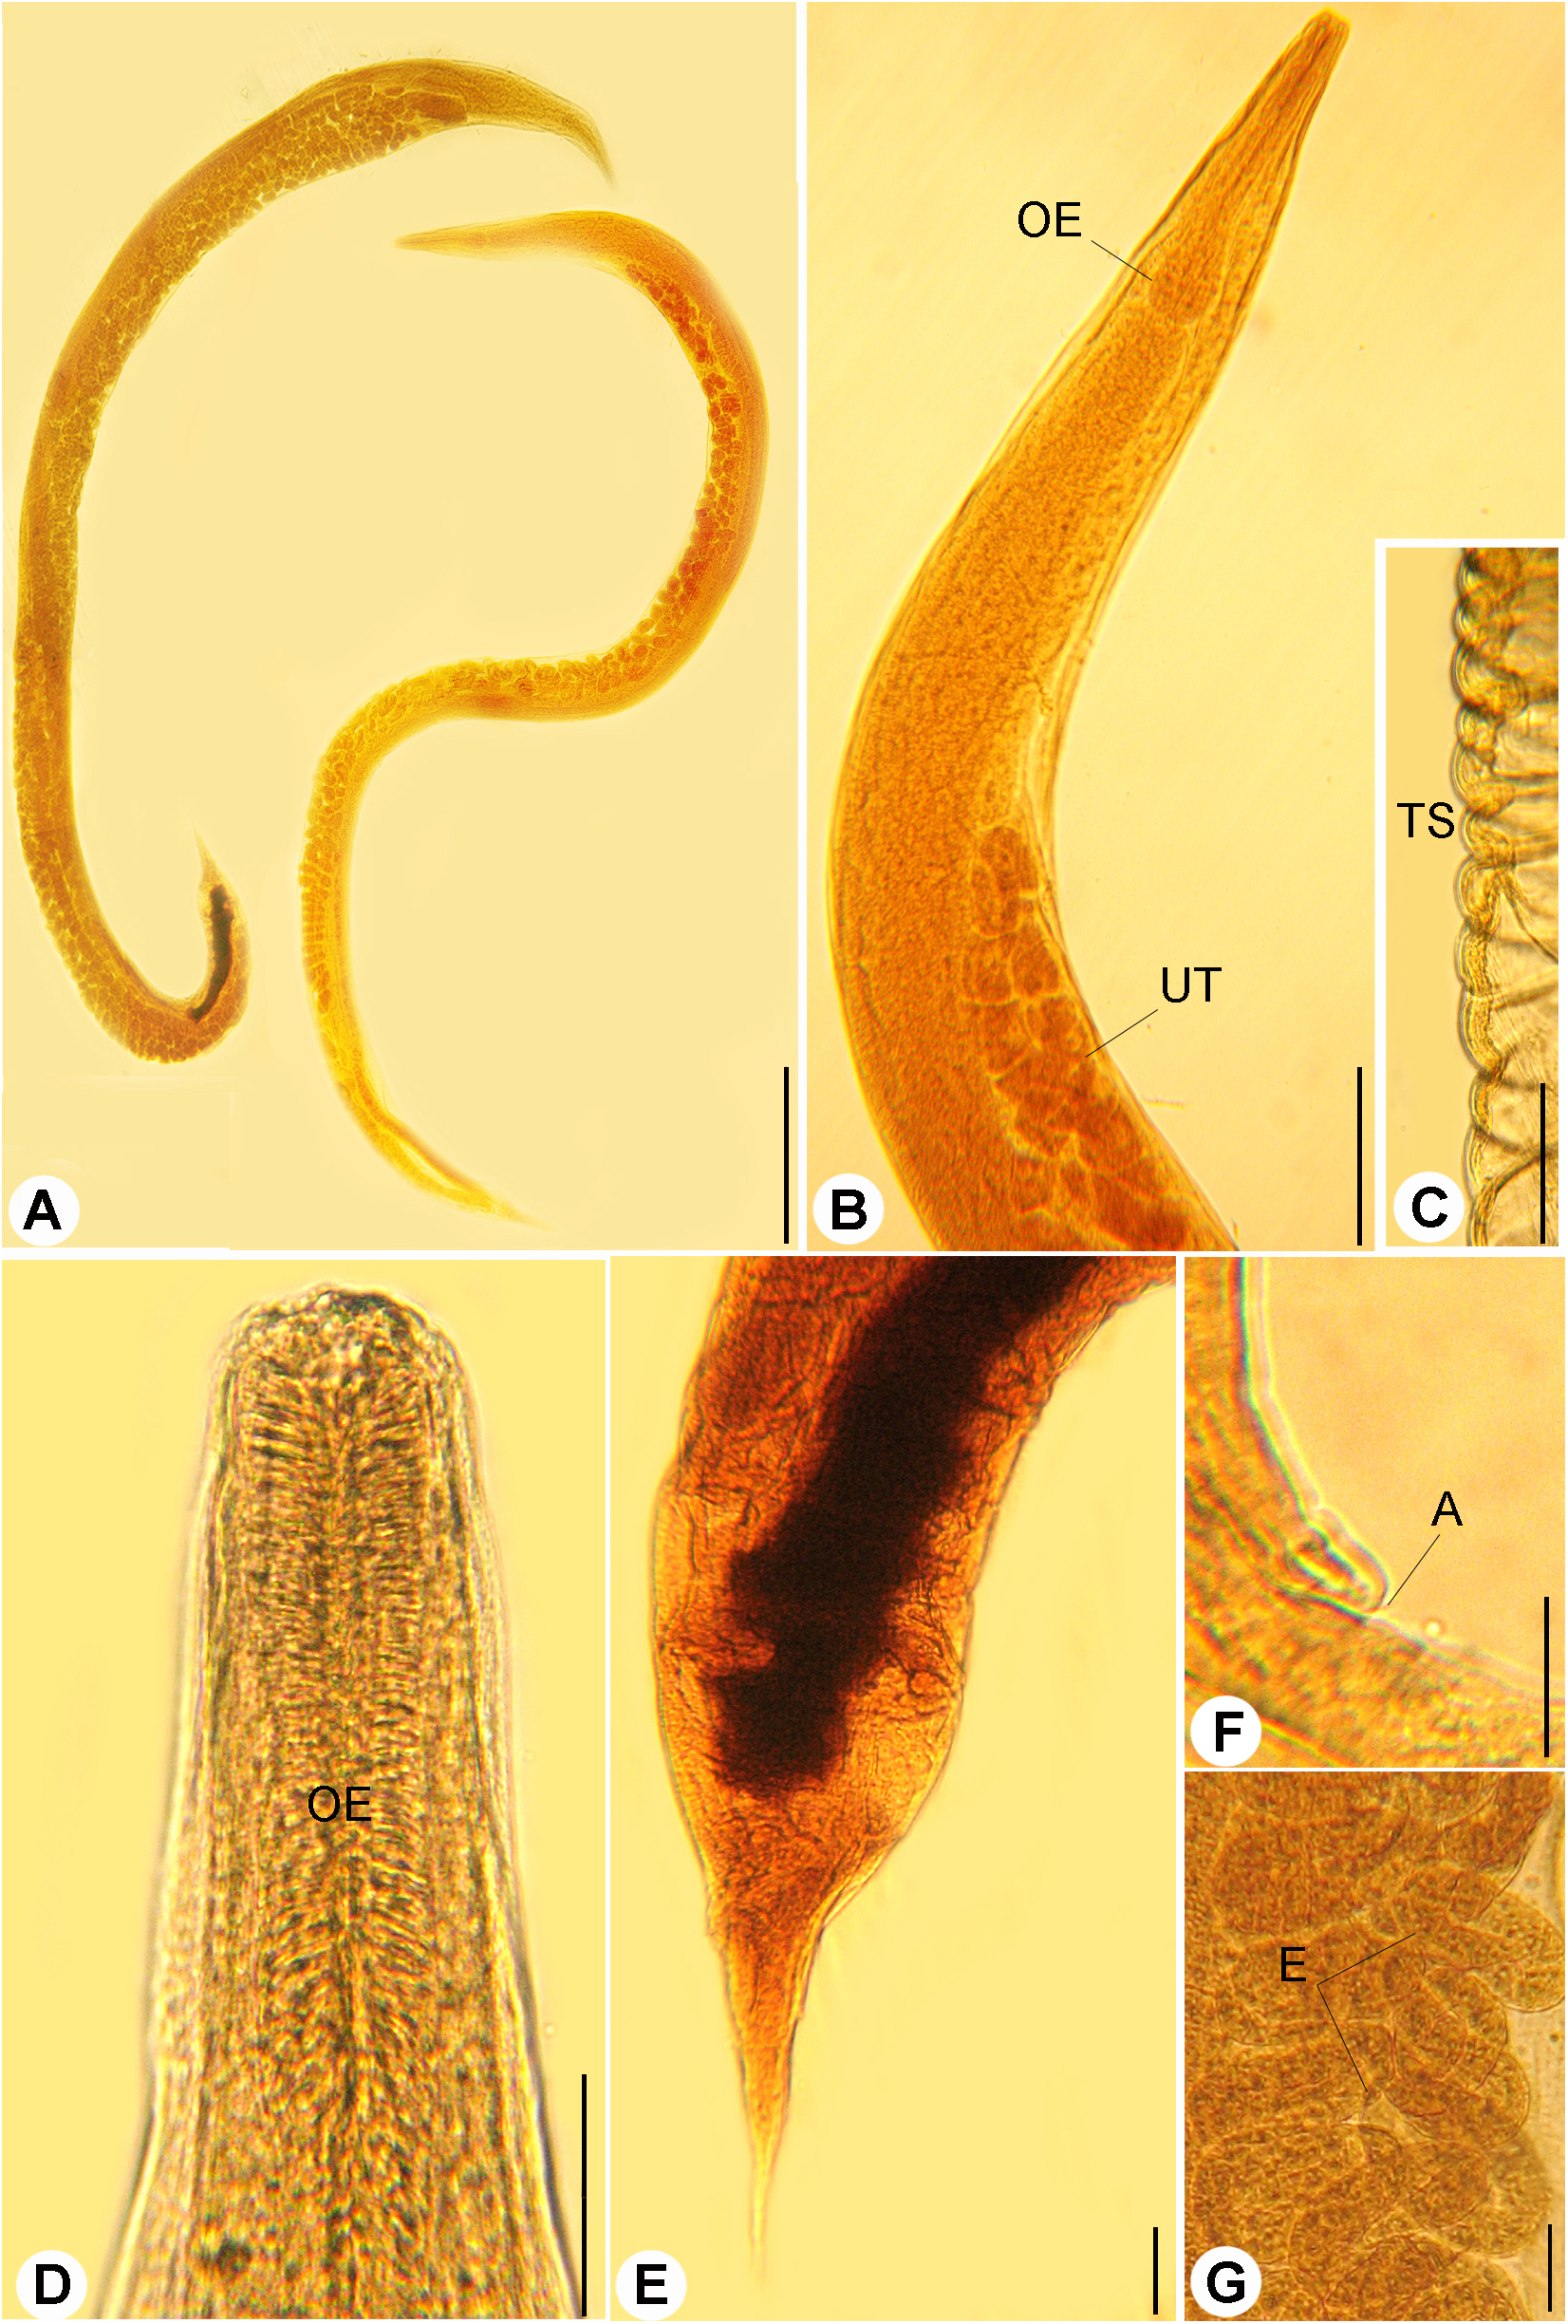 Rhabdias bufonis (Rhabdiasidae) from the lung of the African